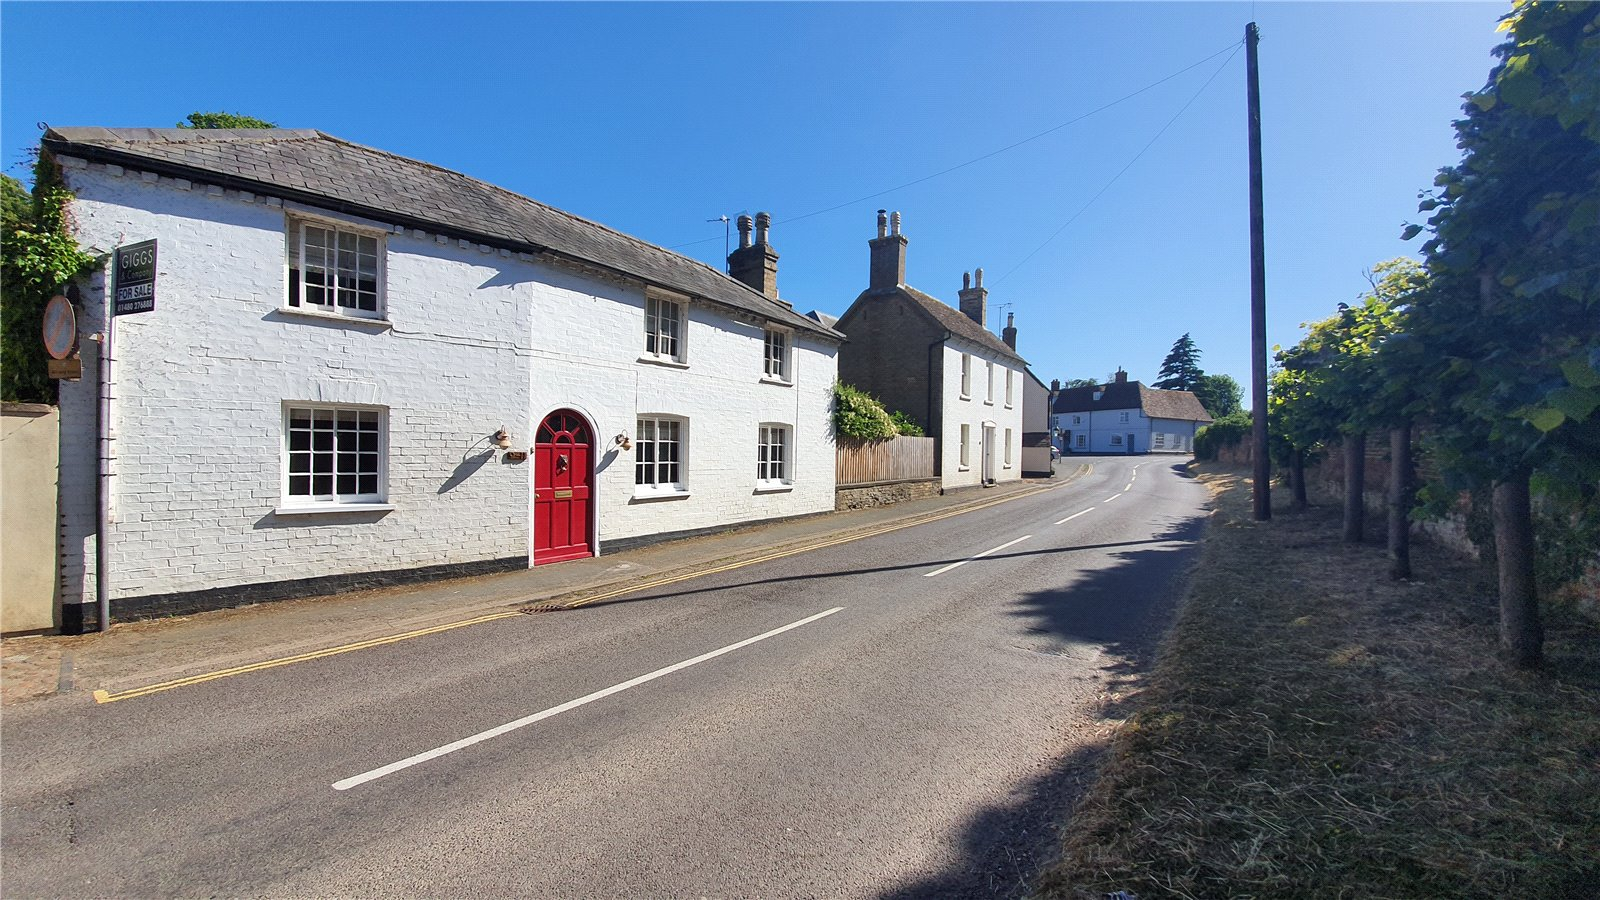 4 bed for sale in The Town, Great Staughton, PE19